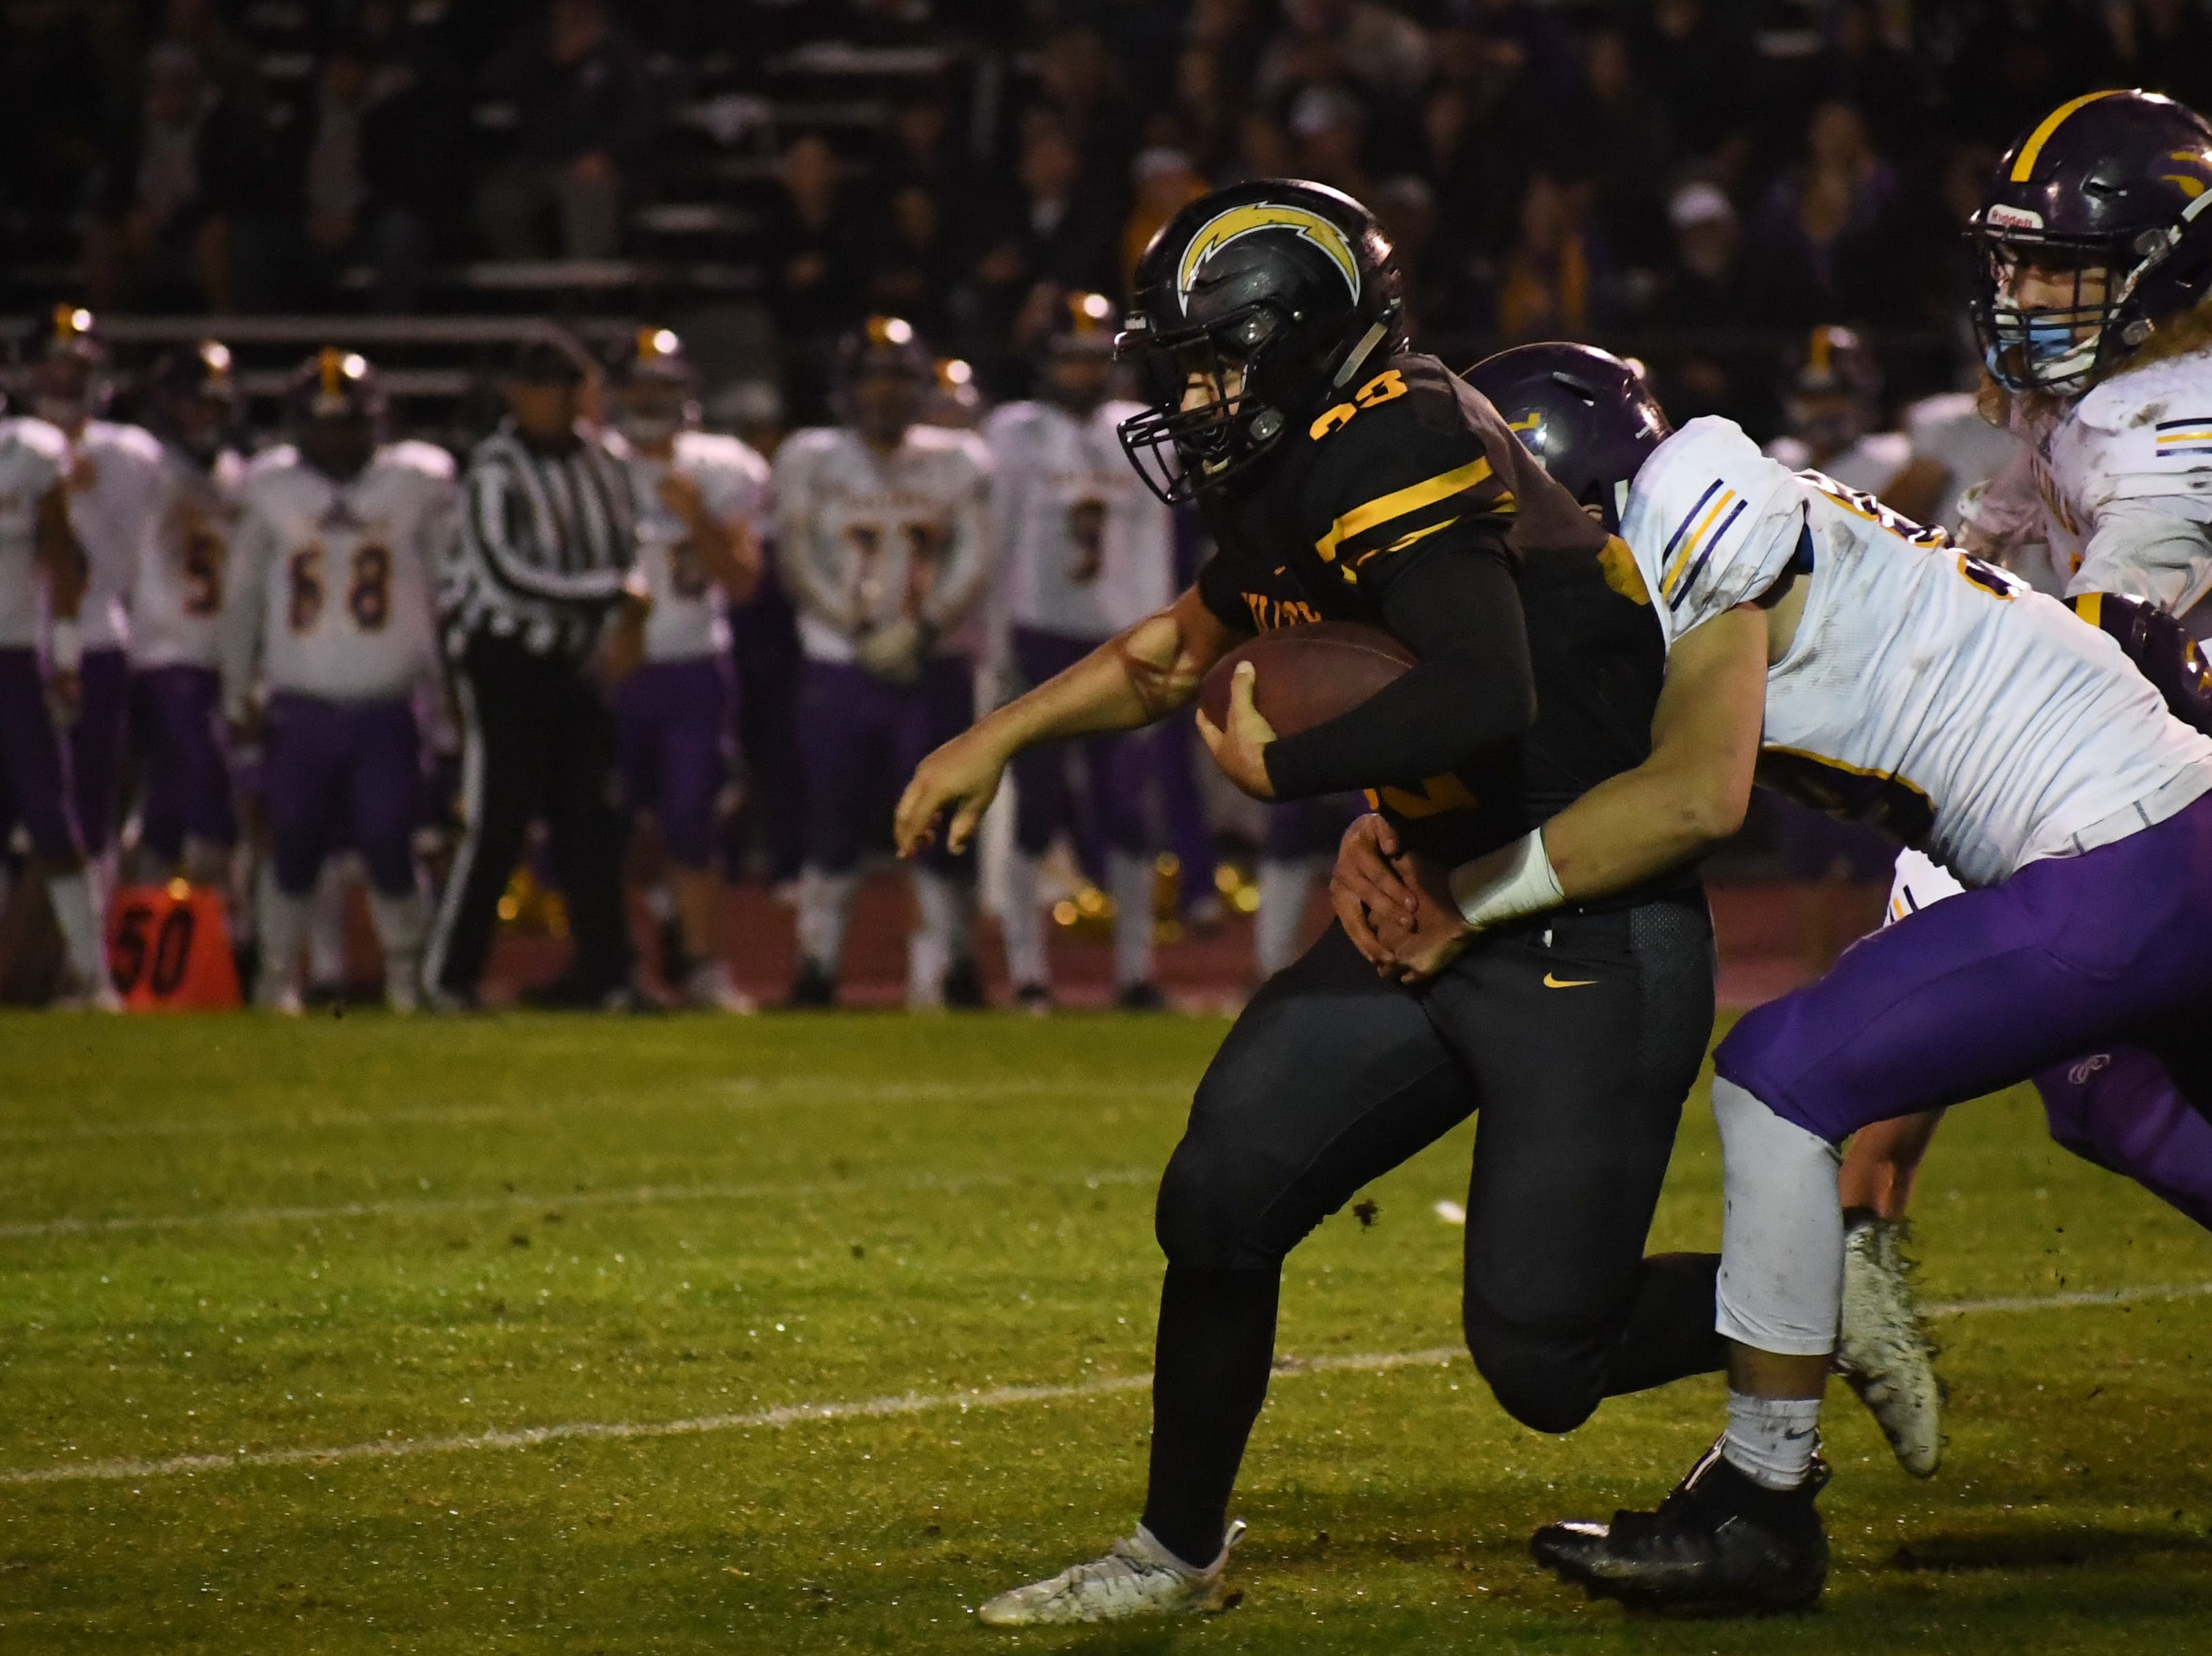 Defensive lineman Zachary Datan (50) chases down a Wilcox running back.